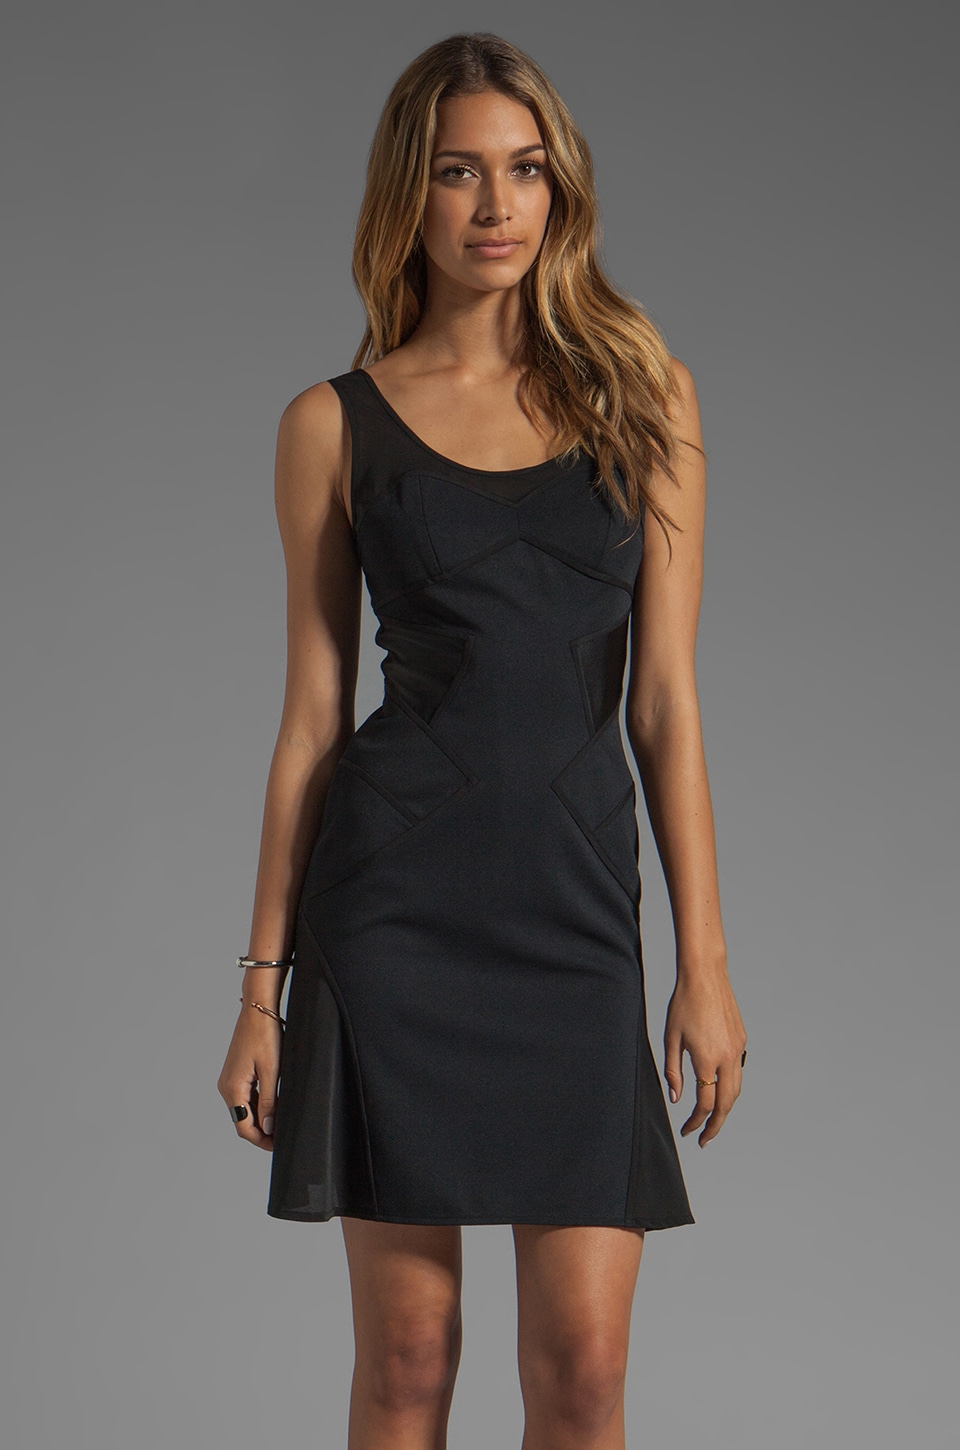 Z Spoke by Zac Posen Sheer Panels Dress in Black